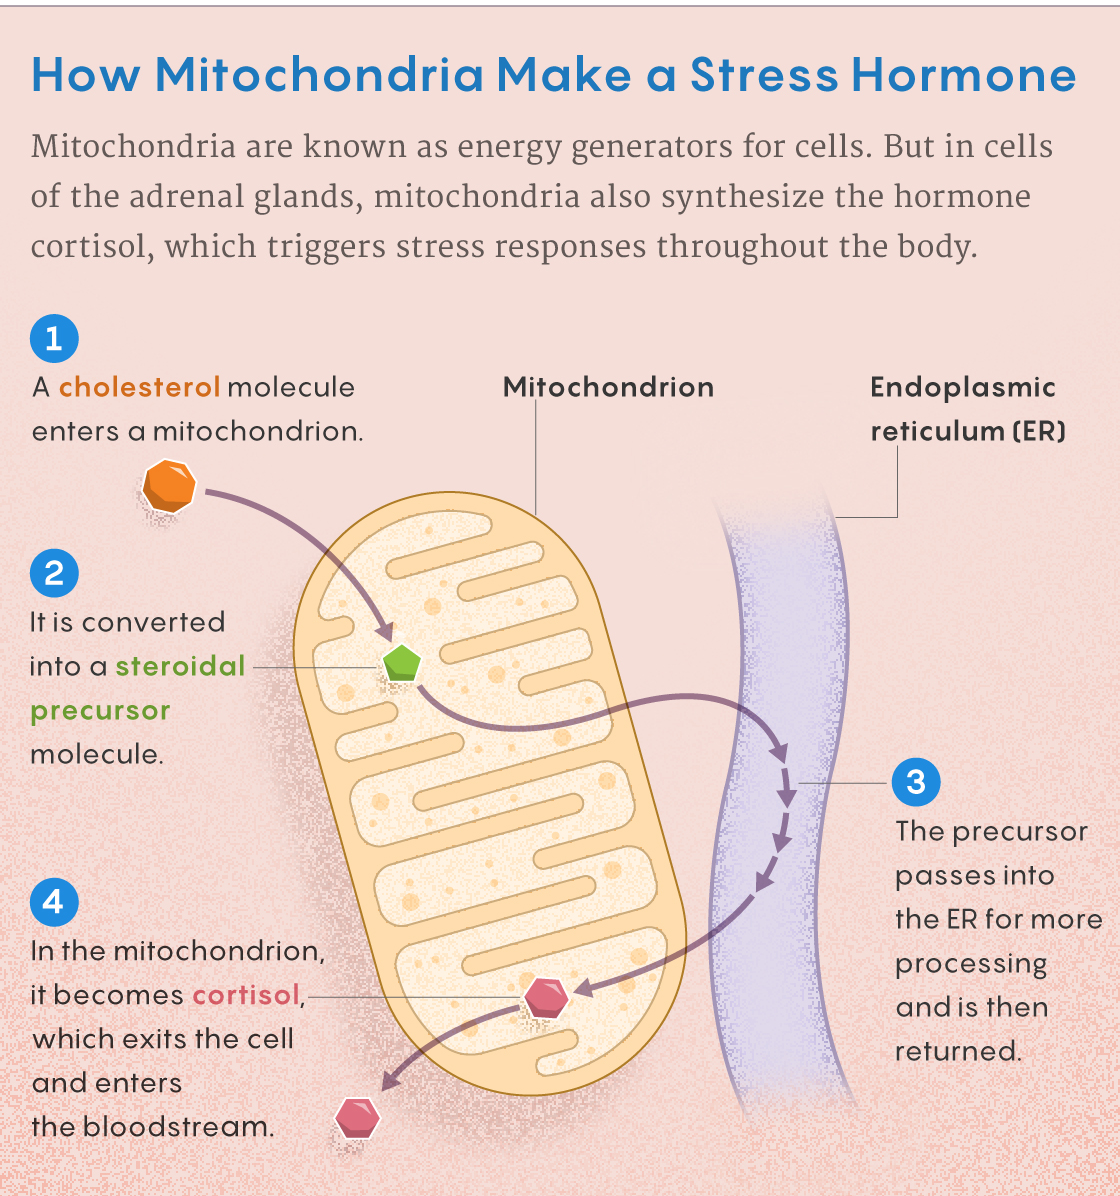 Figure that describes how mitochondria make cortisol.